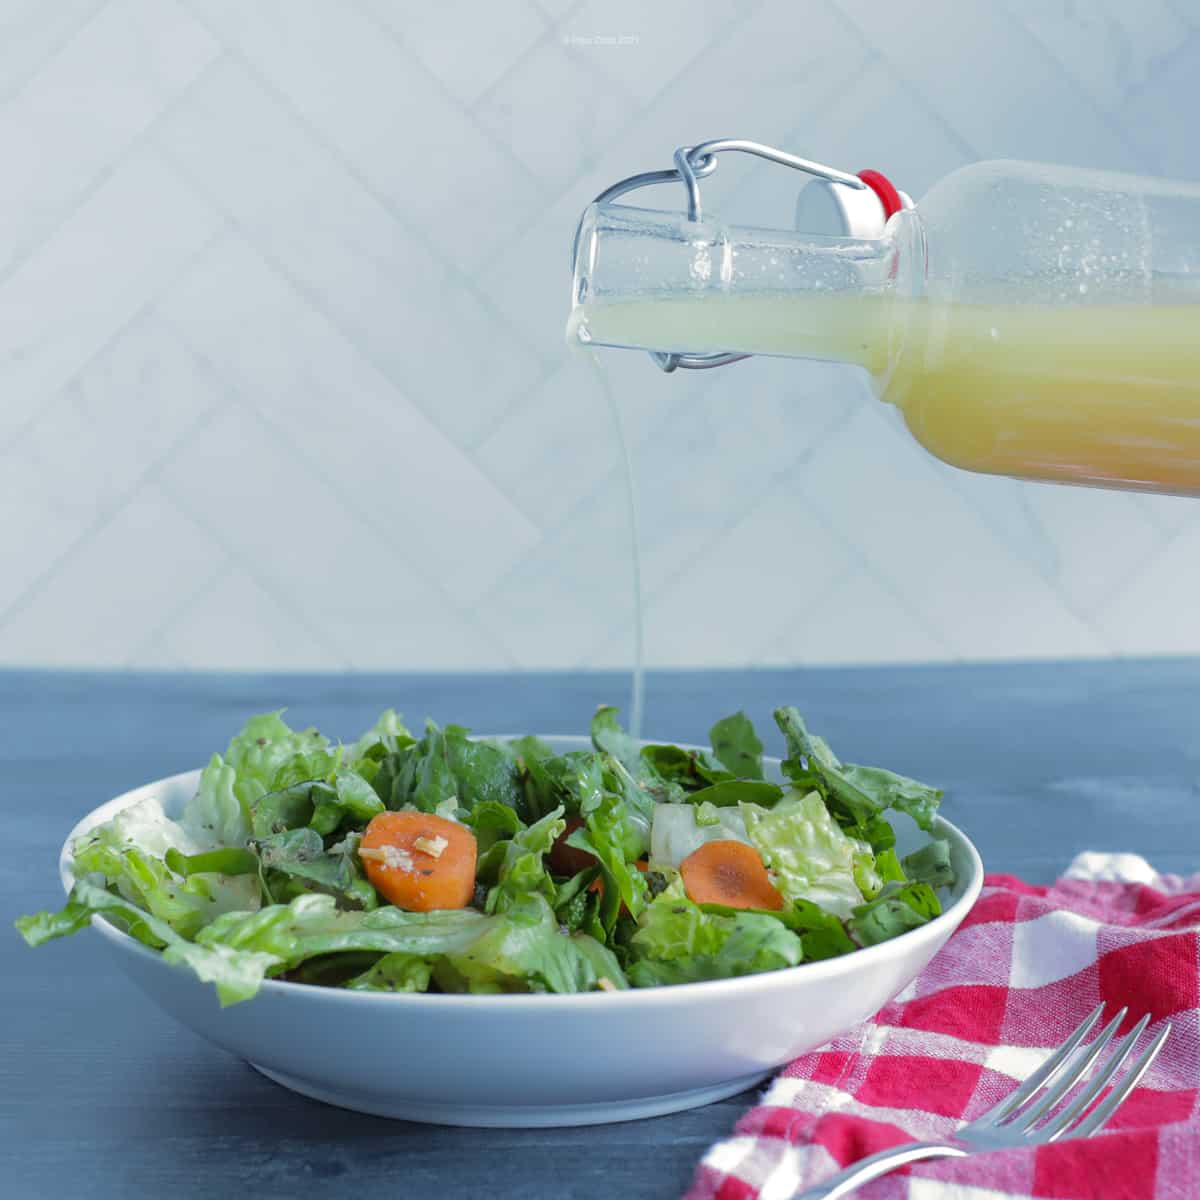 Salad dressing in a glass bottle, being poured over a green salad I a white bowl, with a red checked napkin next to it